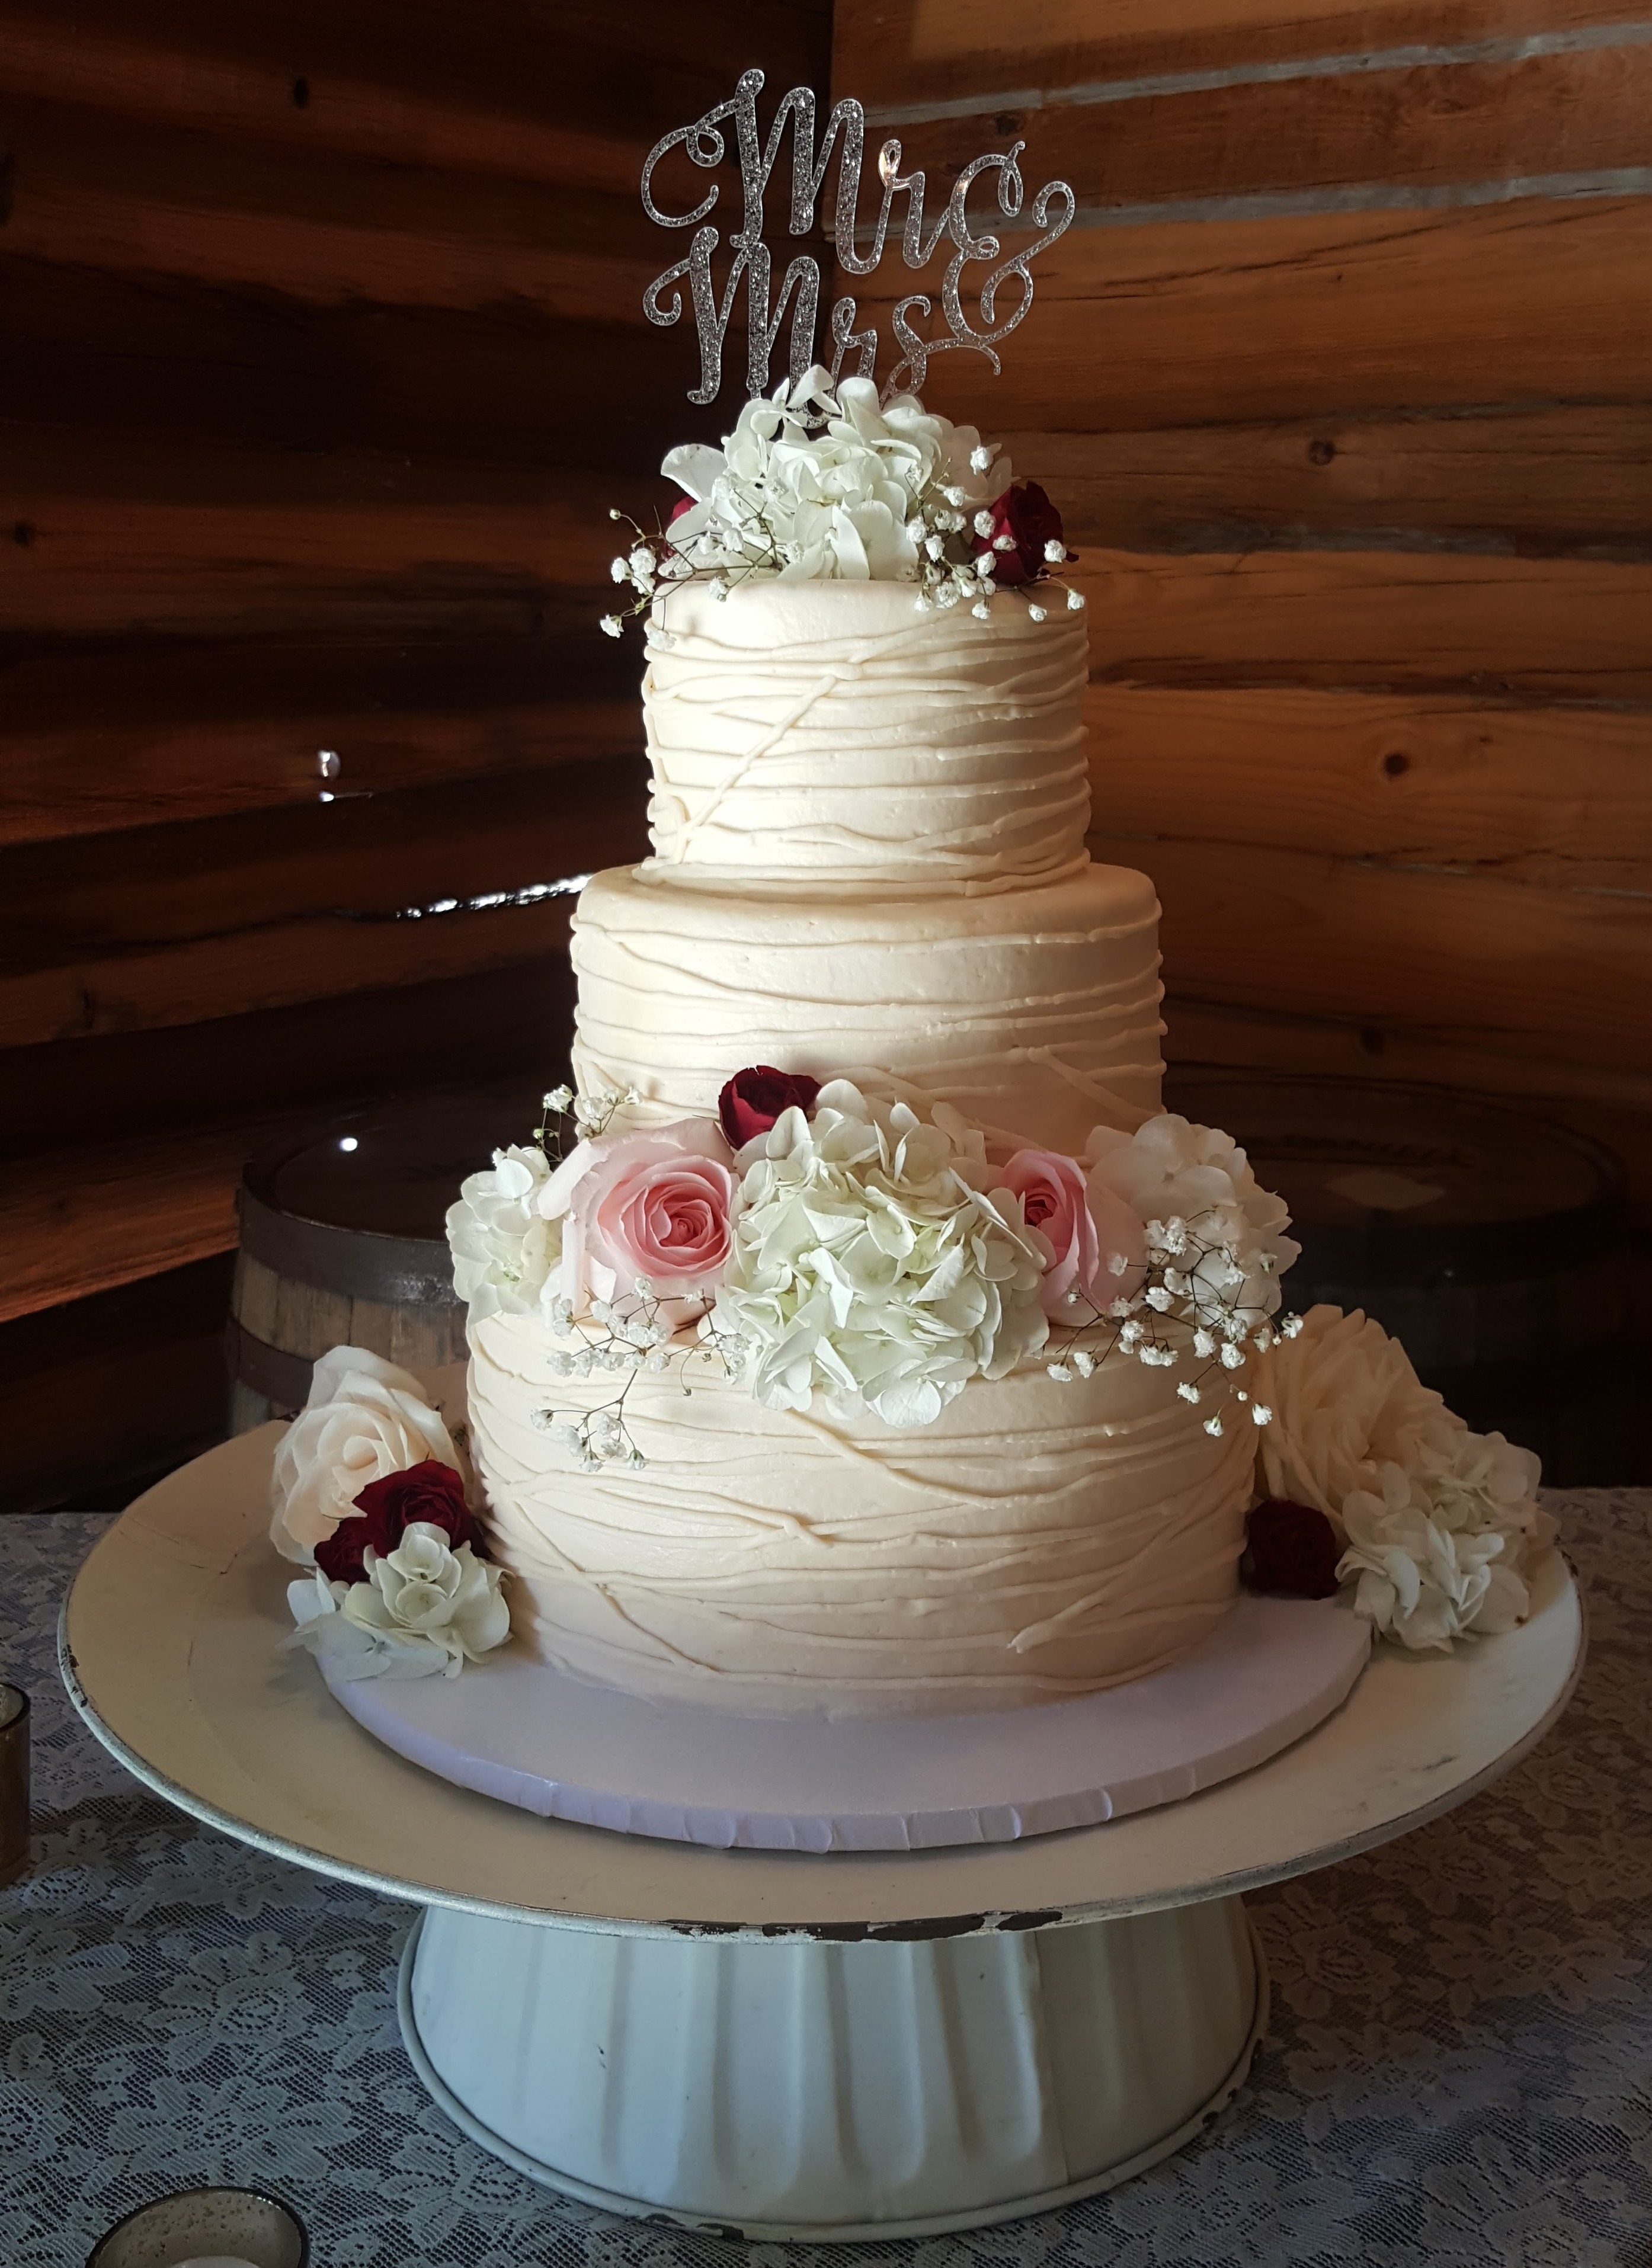 3 Tier Buttercream String Wedding